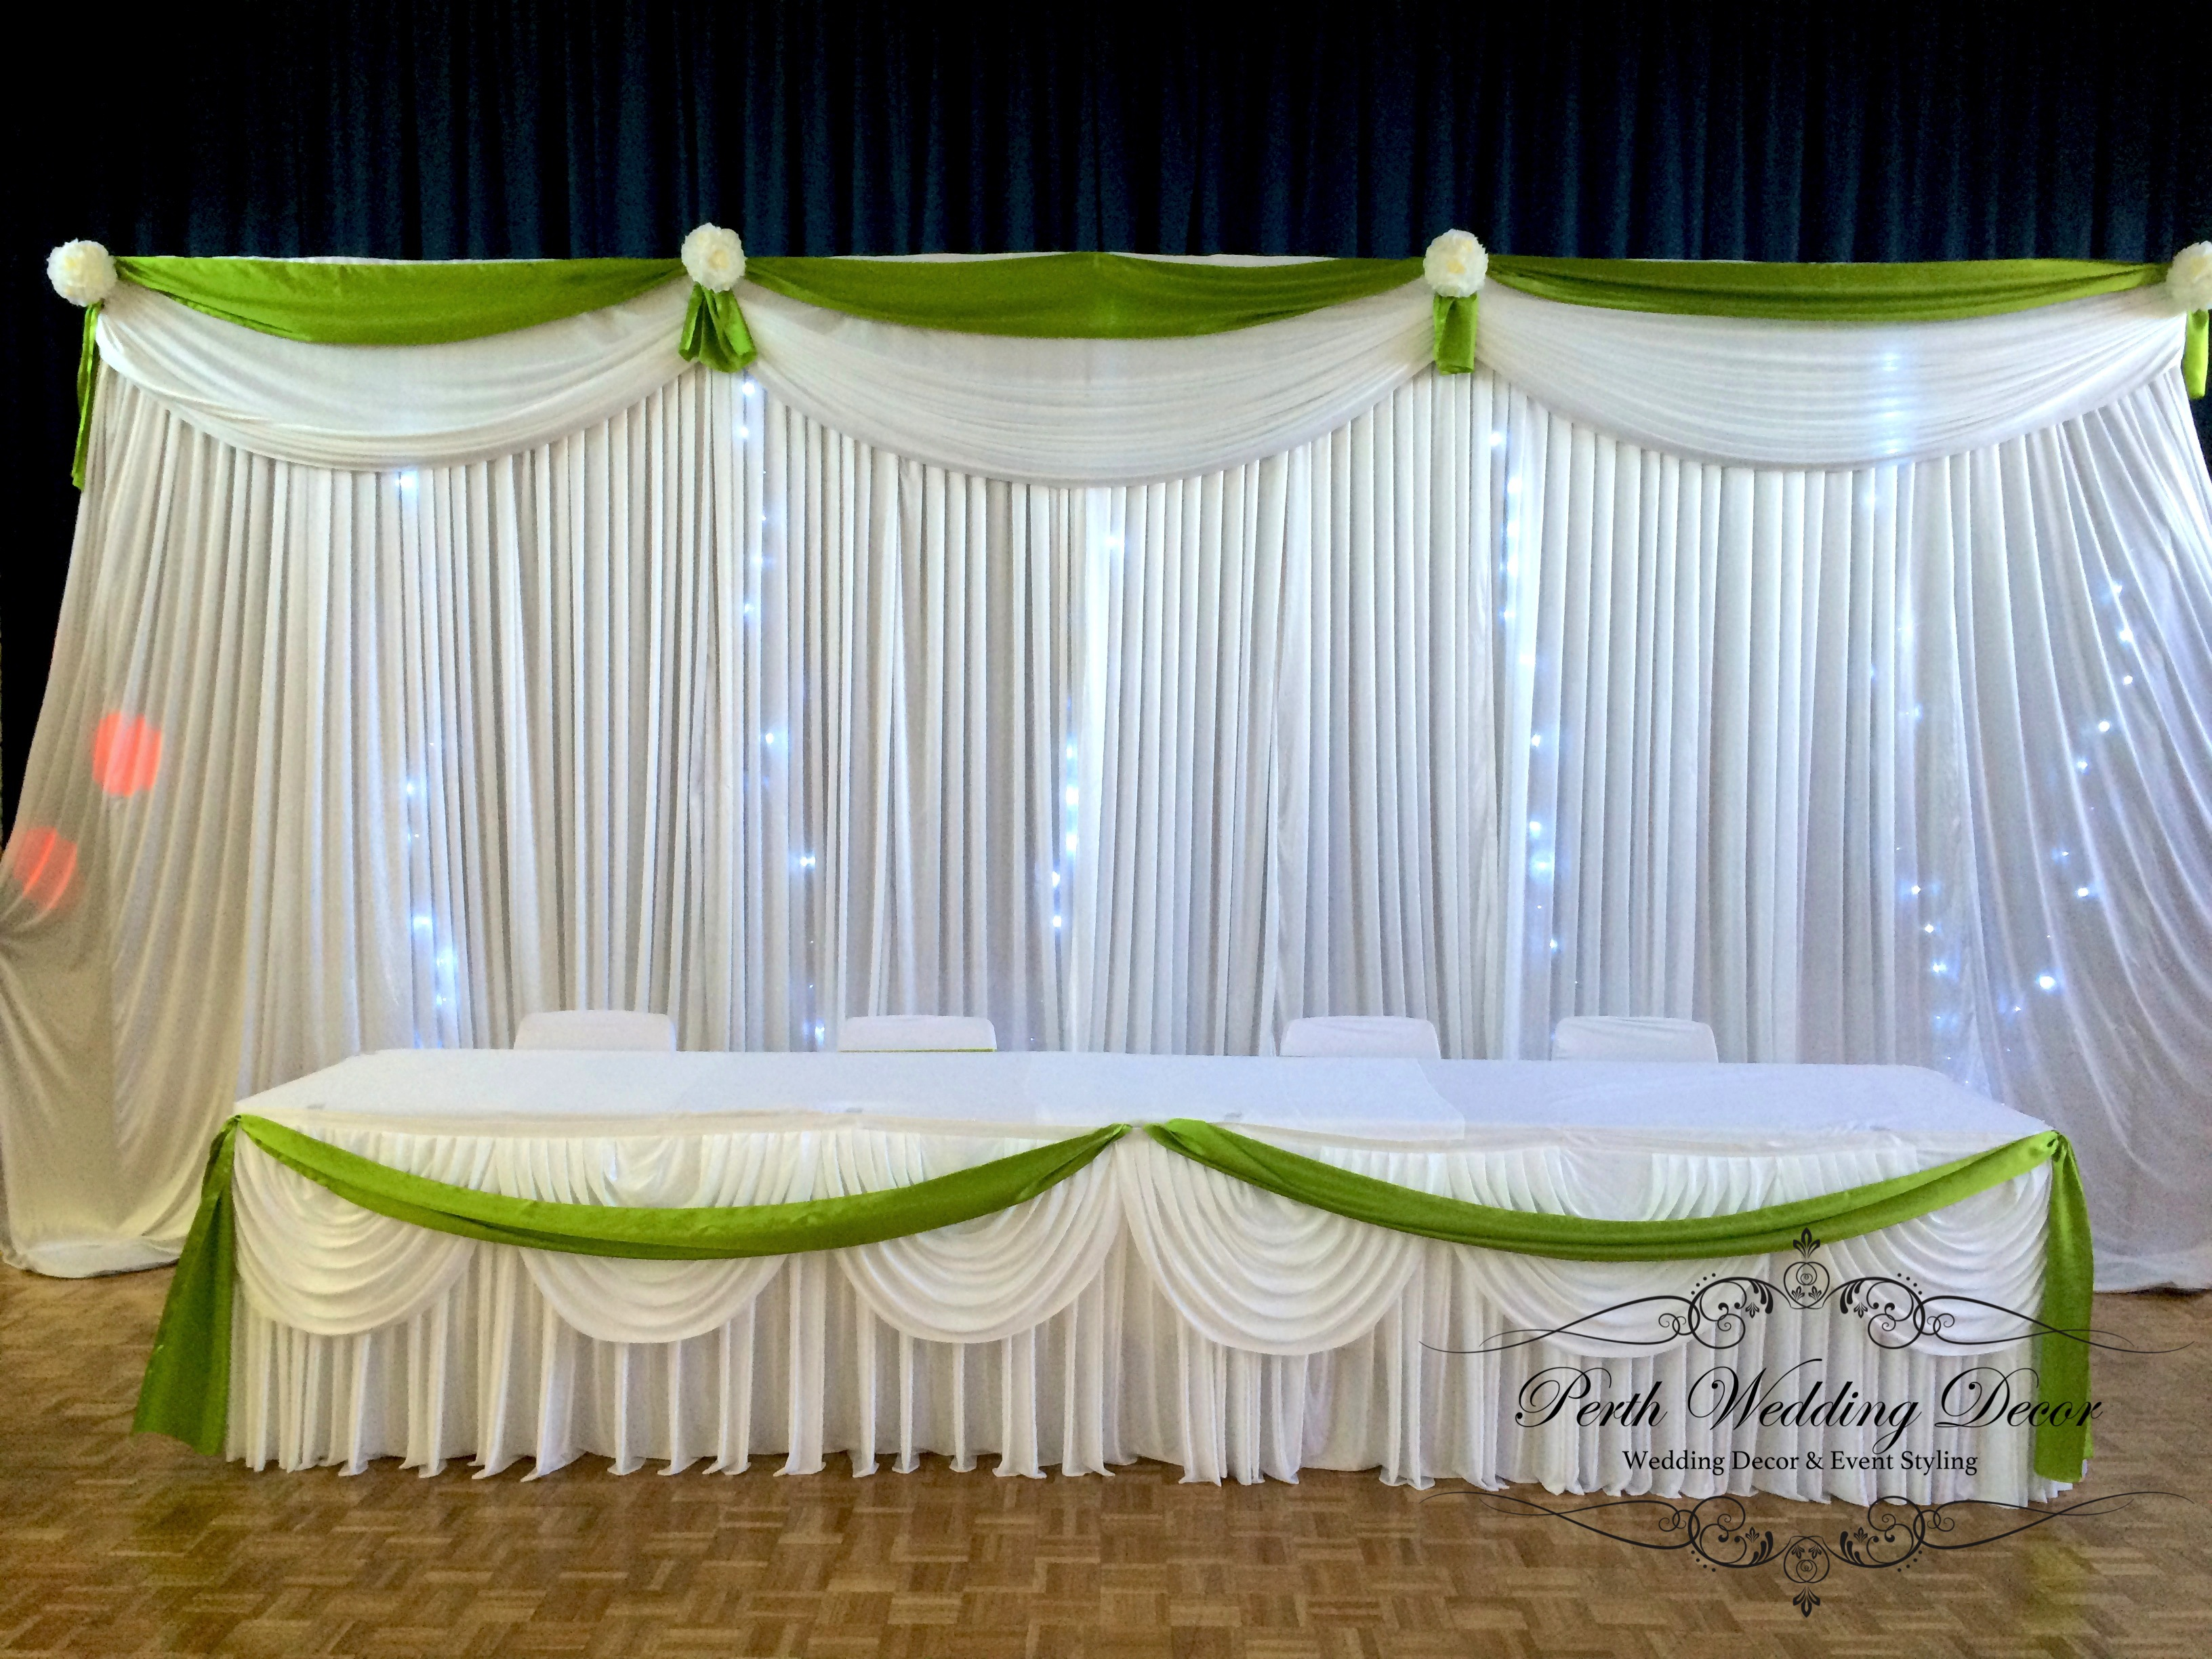 Bridal Table Coloures Draping. 3m 6m $ 18.00, 6m 12m $24.00